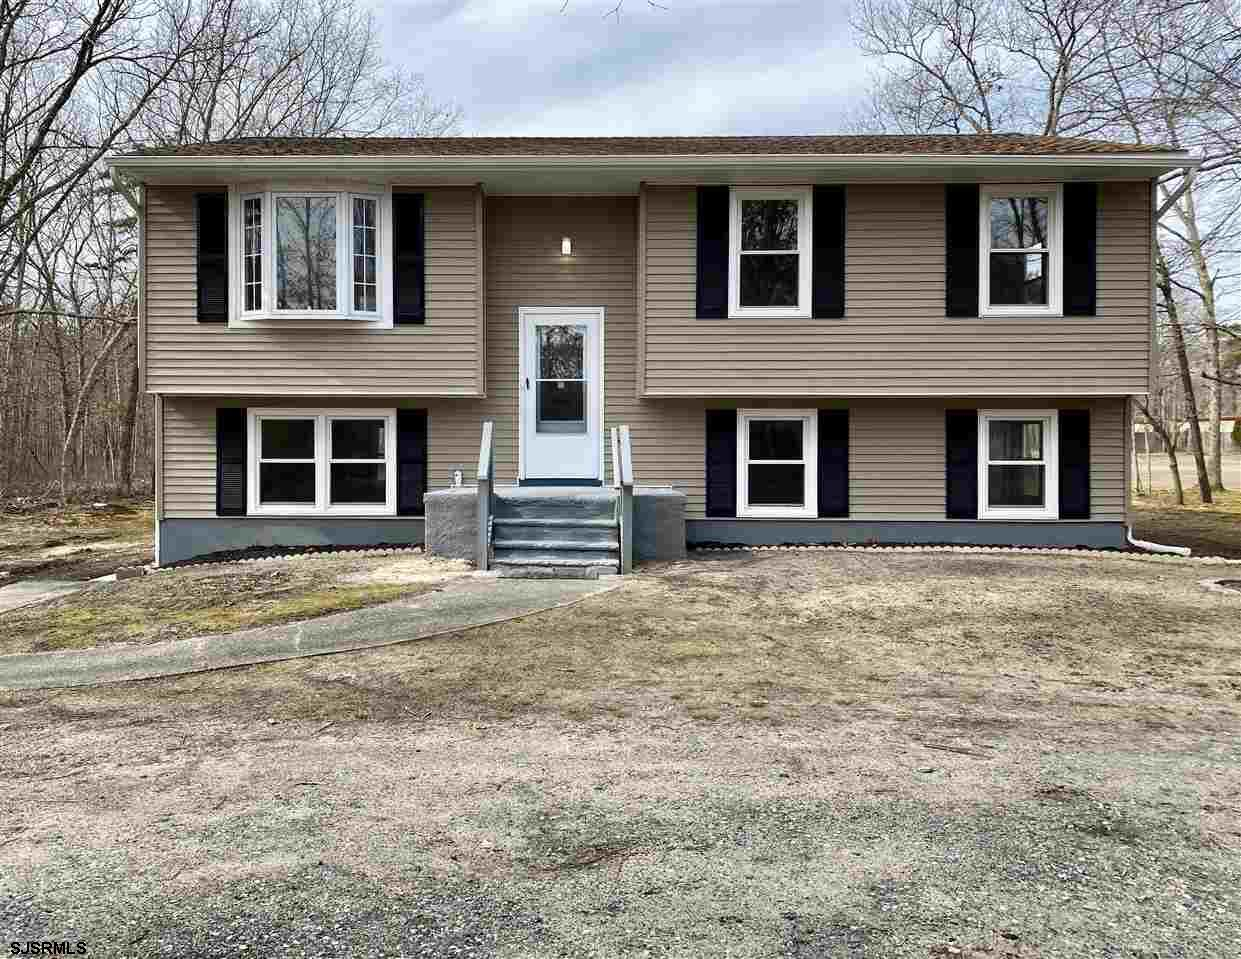 Beautiful split level home in a great location! Laminate wood floors extend across the open concept